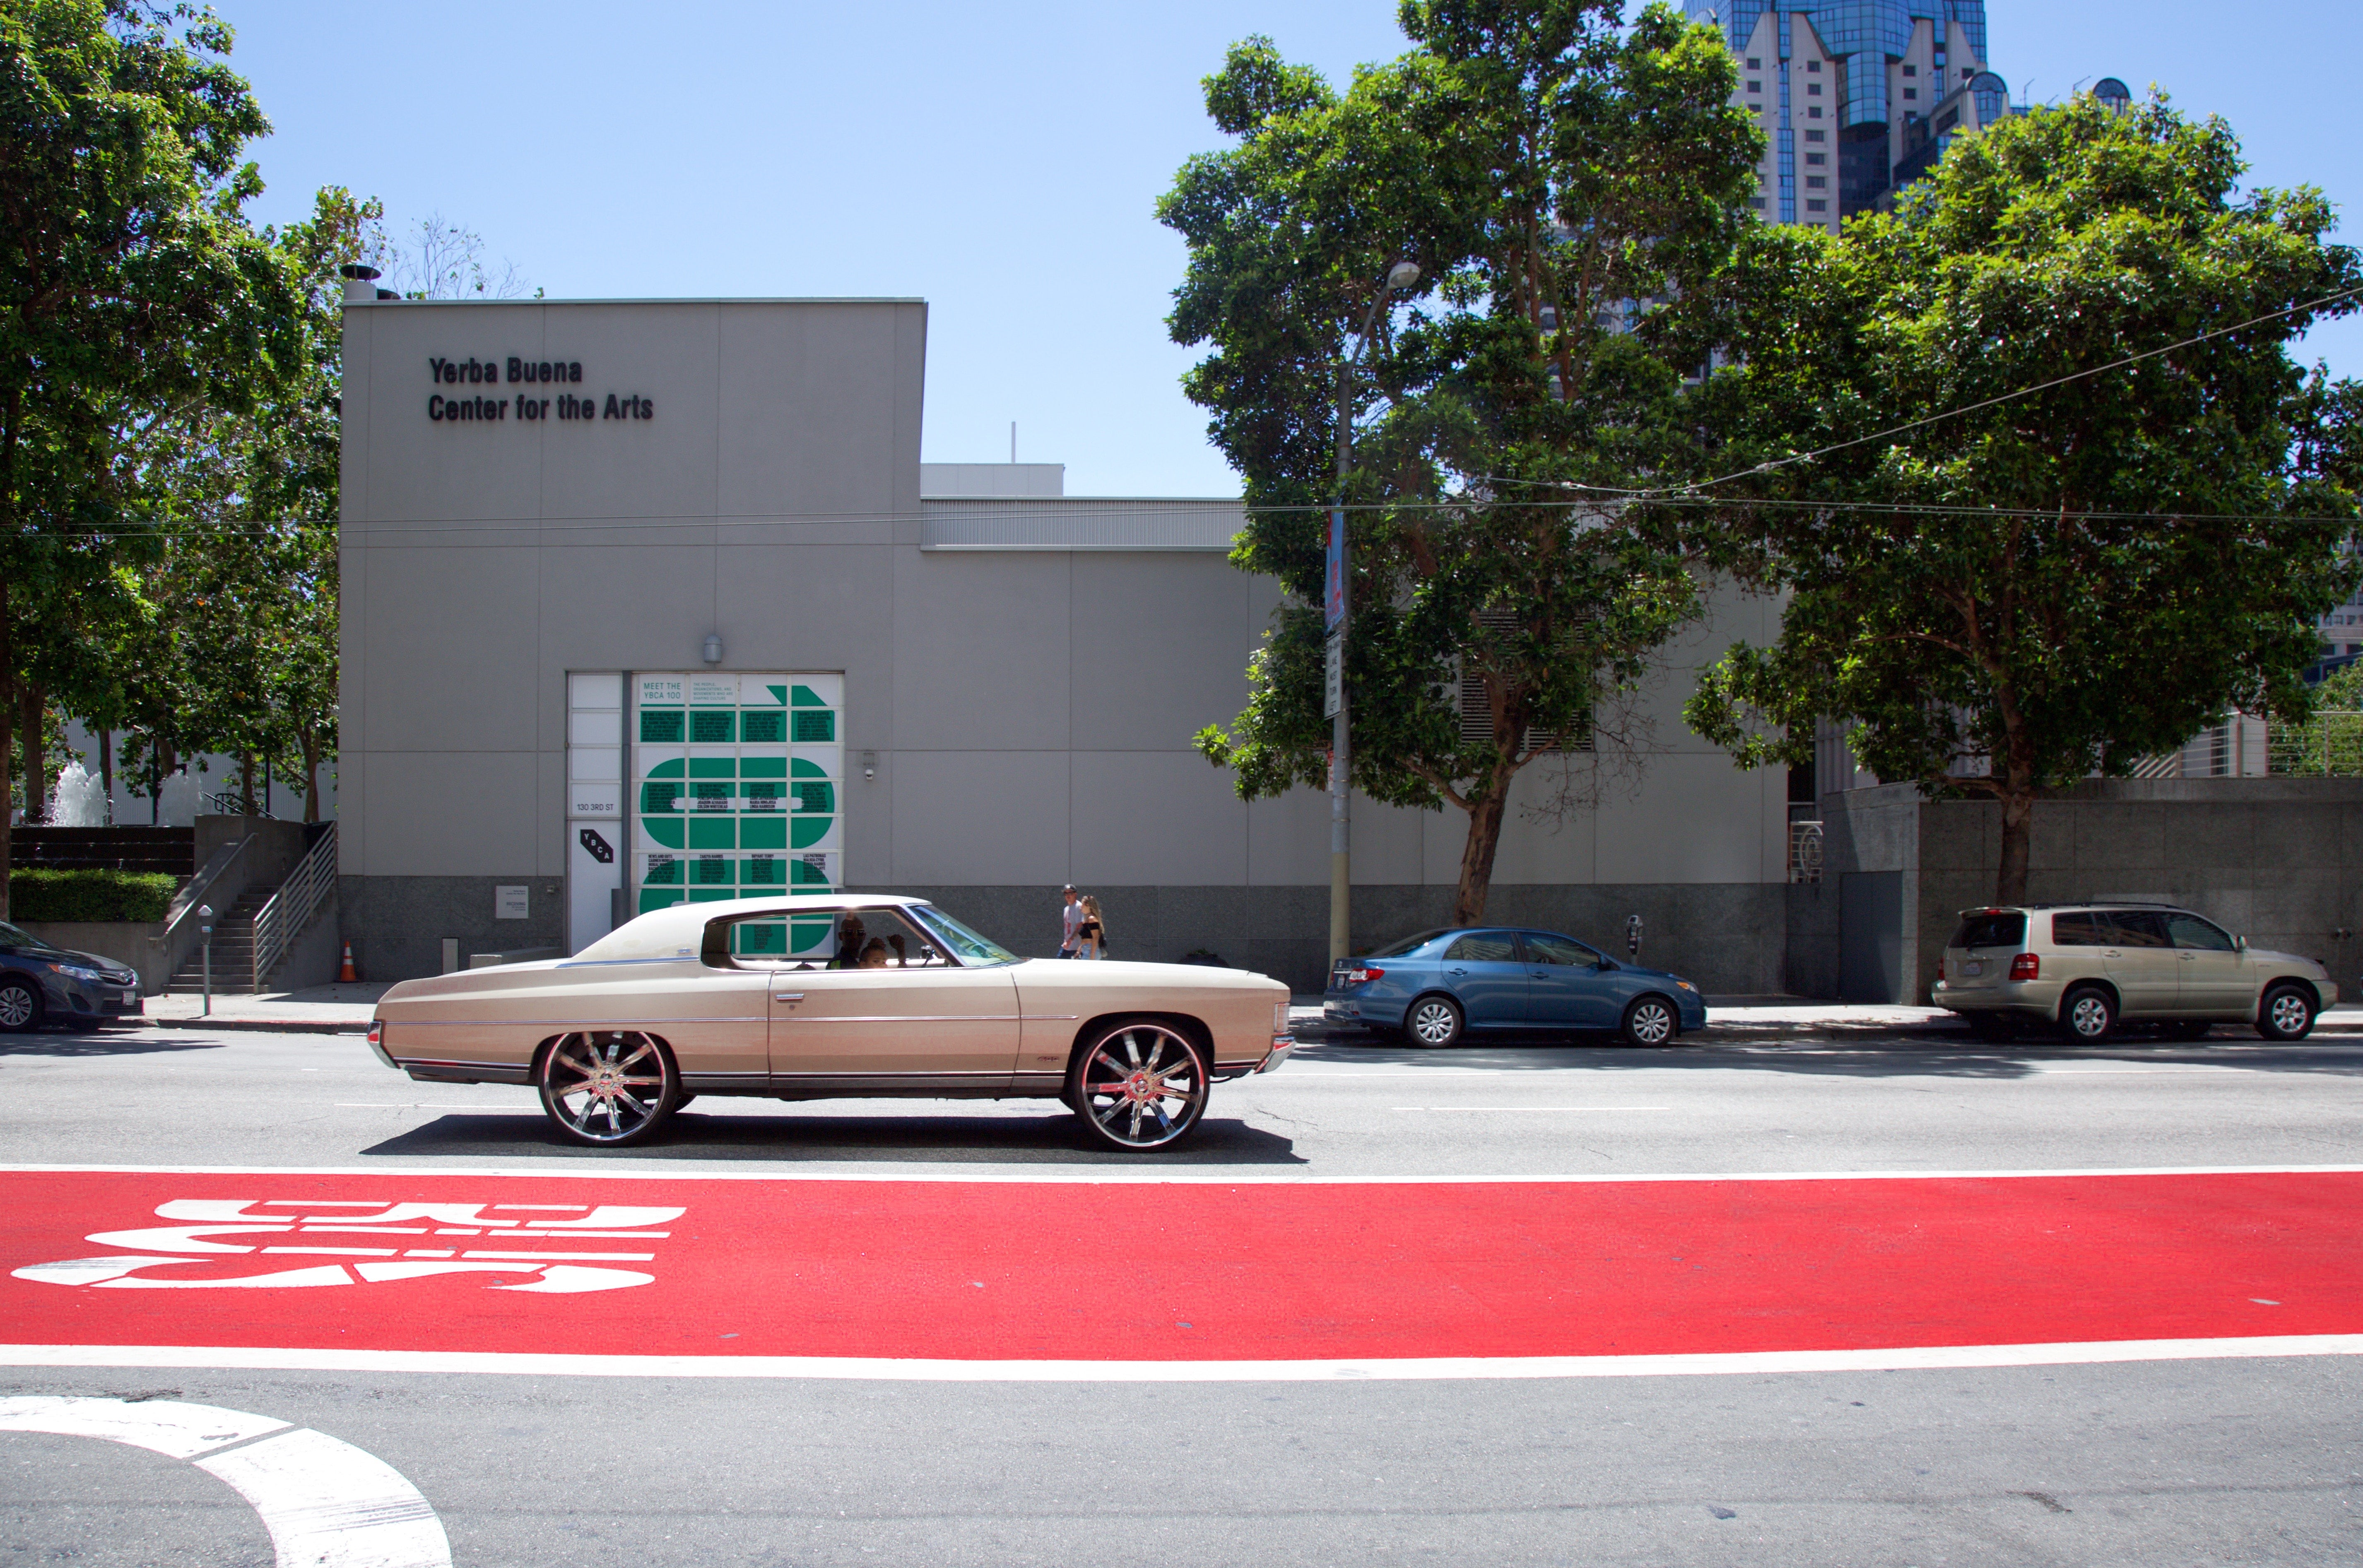 A white car and a red bus lane on a San Francisco street.